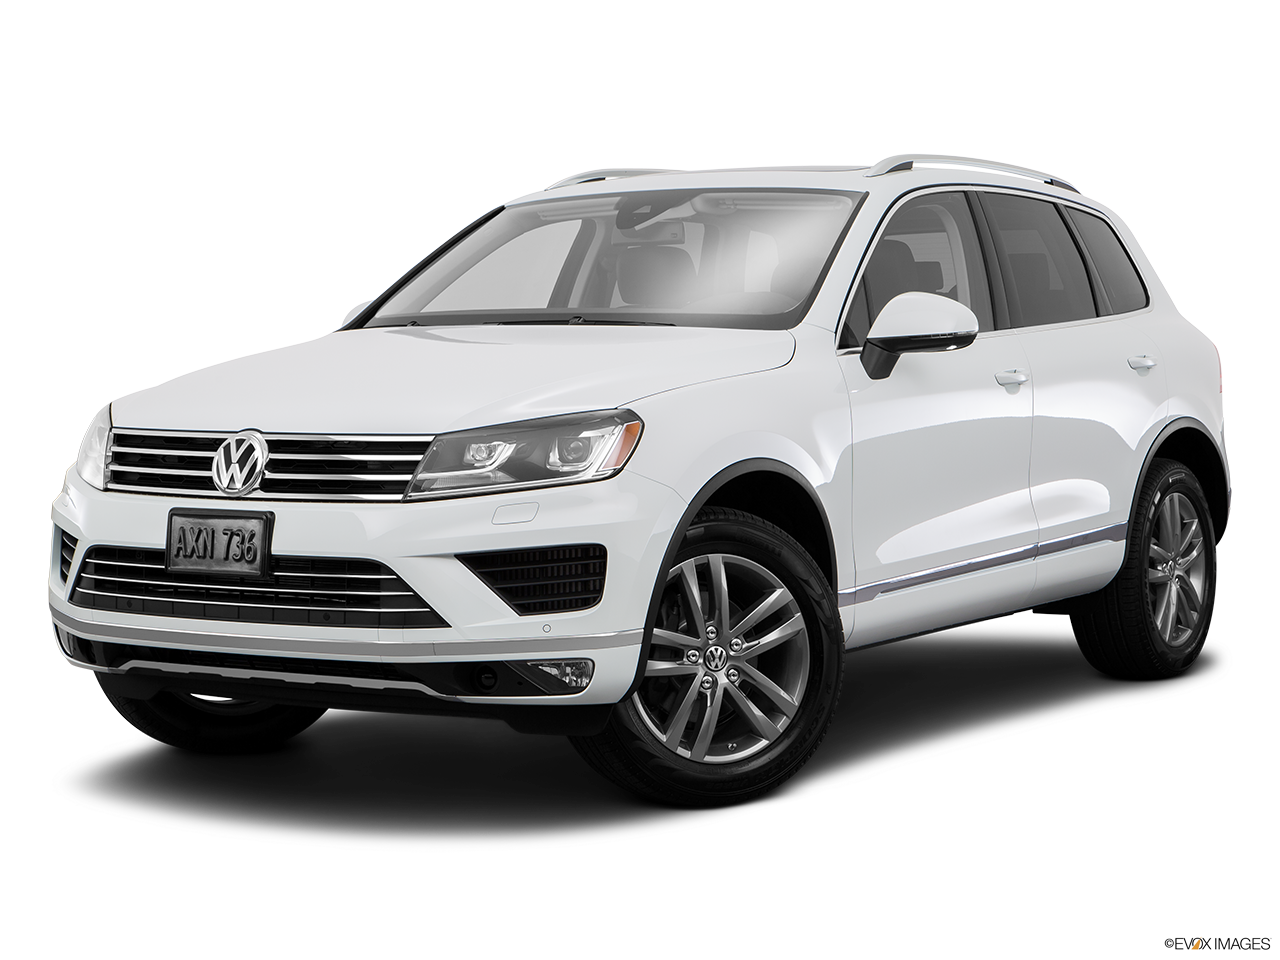 Test Drive A 2017 Volkswagen Touareg at Herman Cook Volkswagen in San Diego